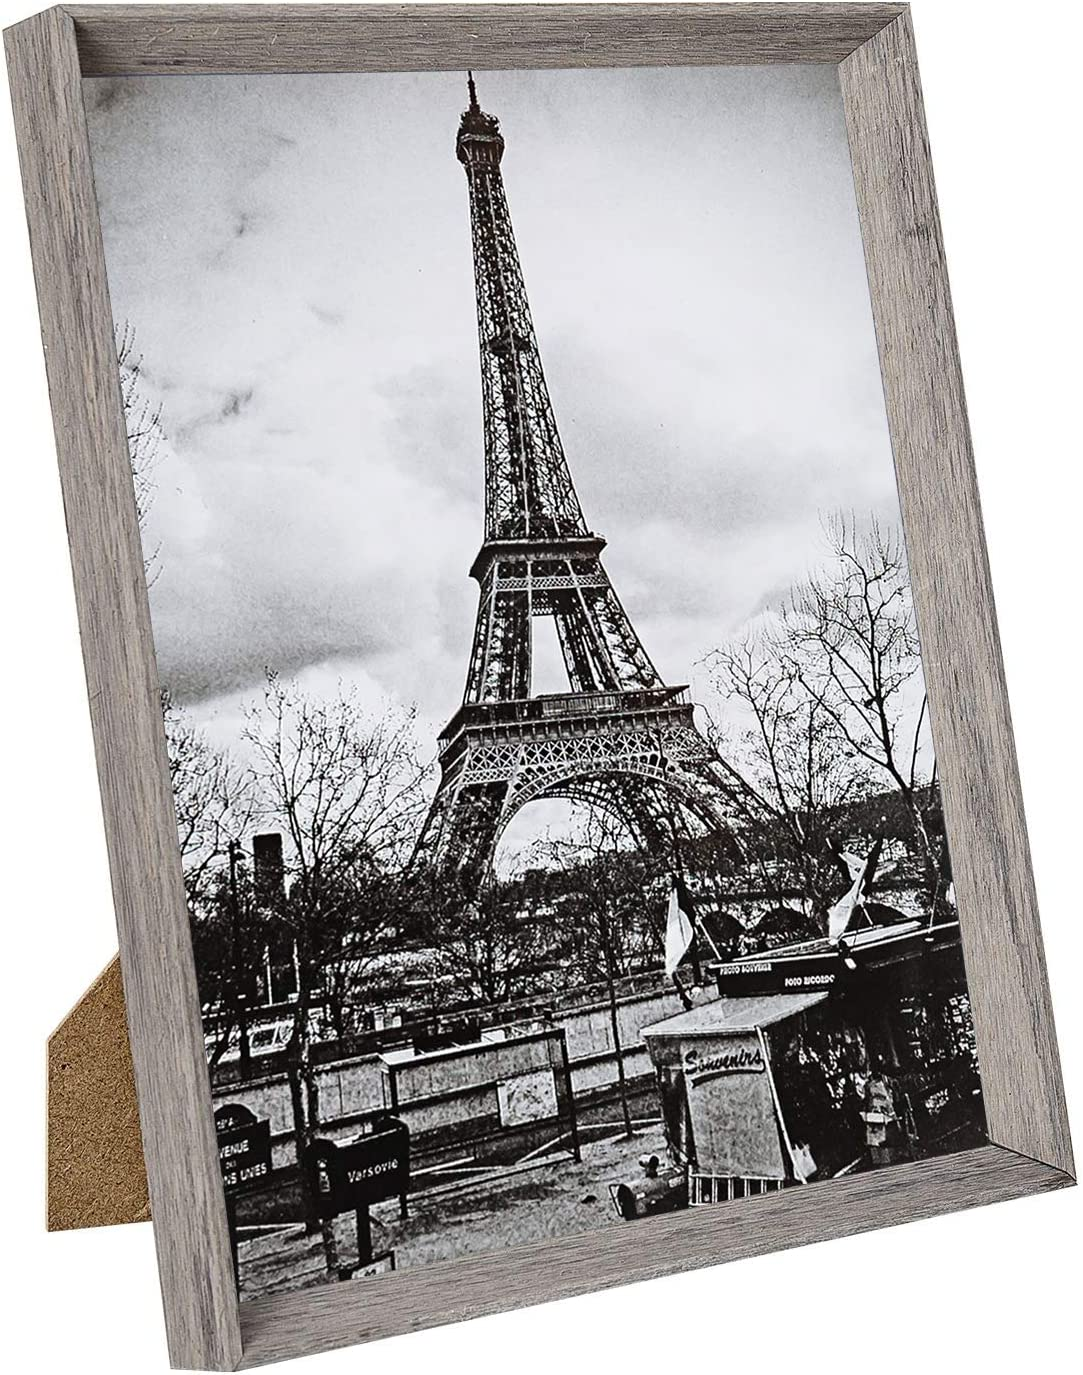 upsimples 8x10 Picture Frame with Real Glass and Mat,Rustic Photo Frames for Wall or Tabletop Display,Set of 5